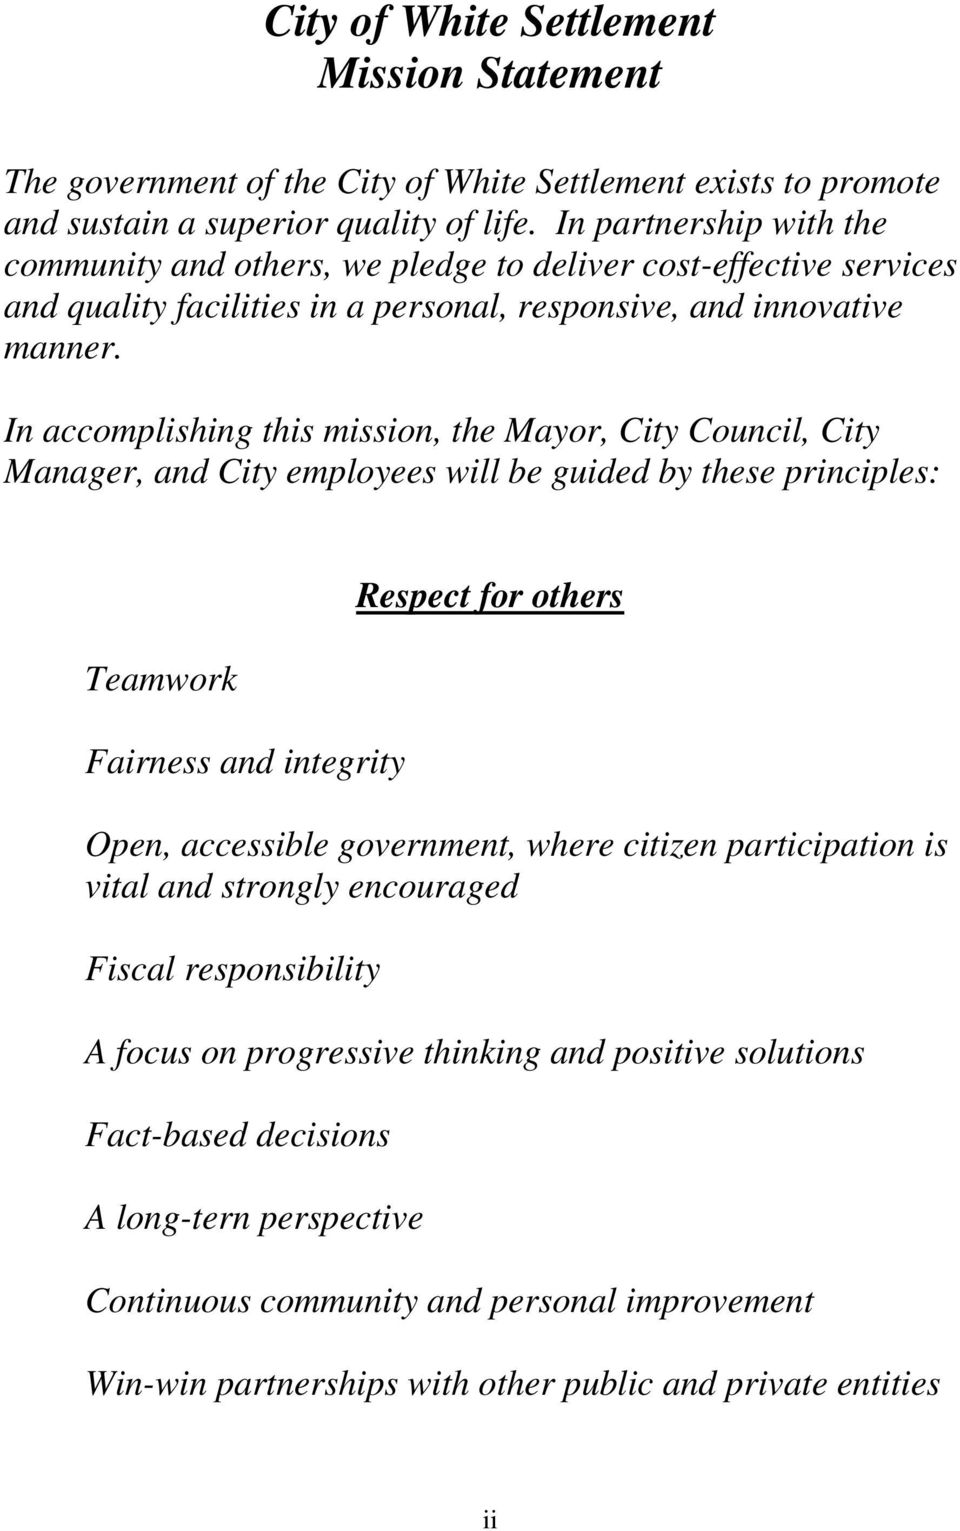 In accomplishing this mission, the Mayor, City Council, City Manager, and City employees will be guided by these principles: Teamwork Fairness and integrity Respect for others Open, accessible